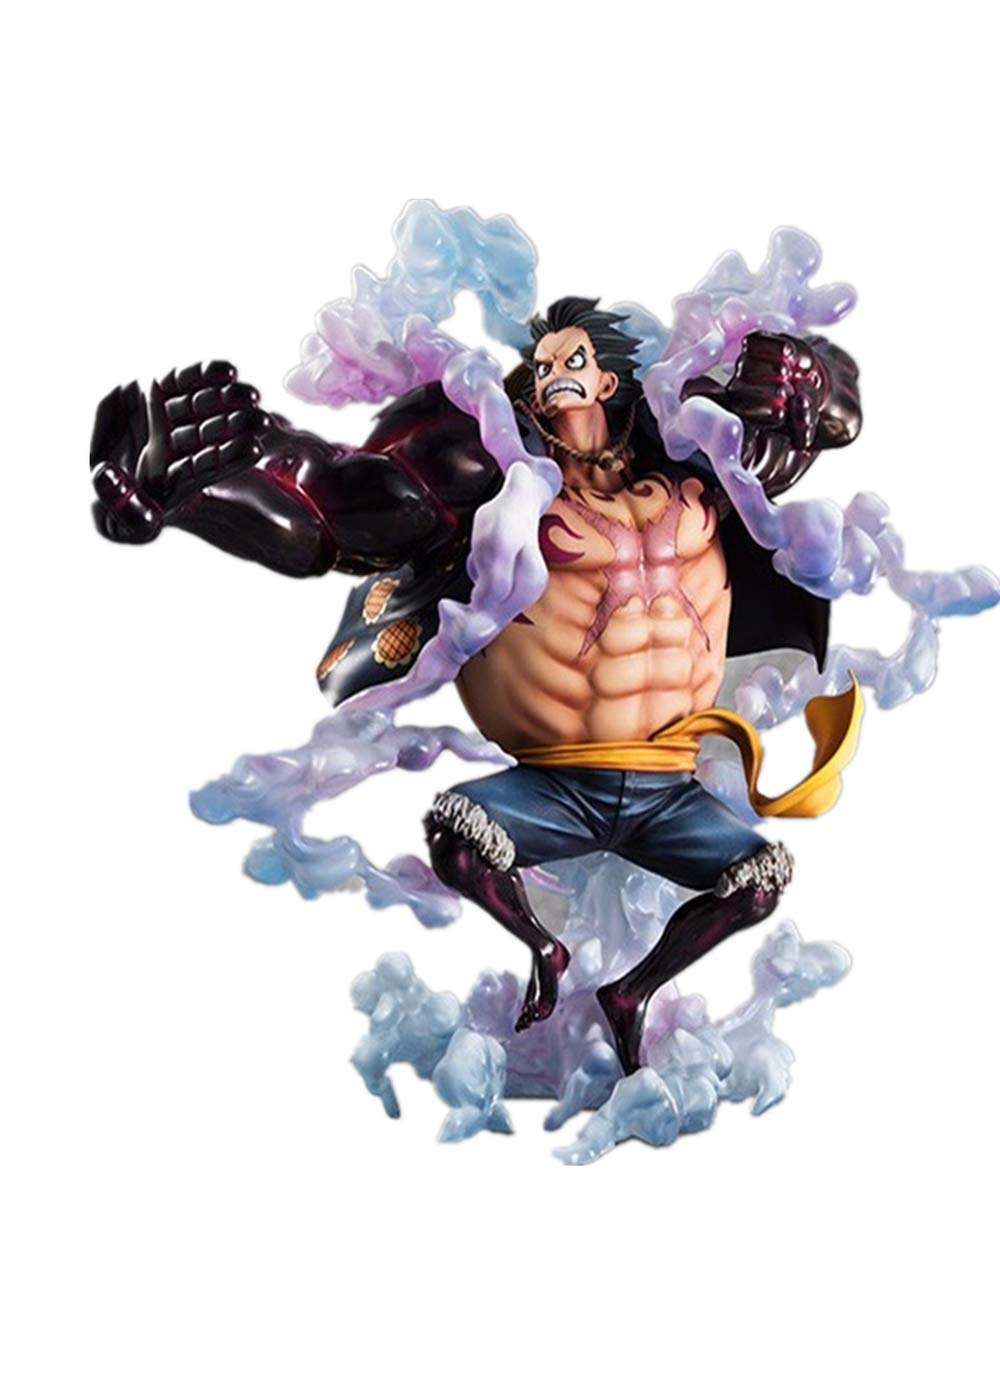 One Piece Super Big Monkey D Luffy Gear Fourth Action Figure by Water Asked (Image #1)